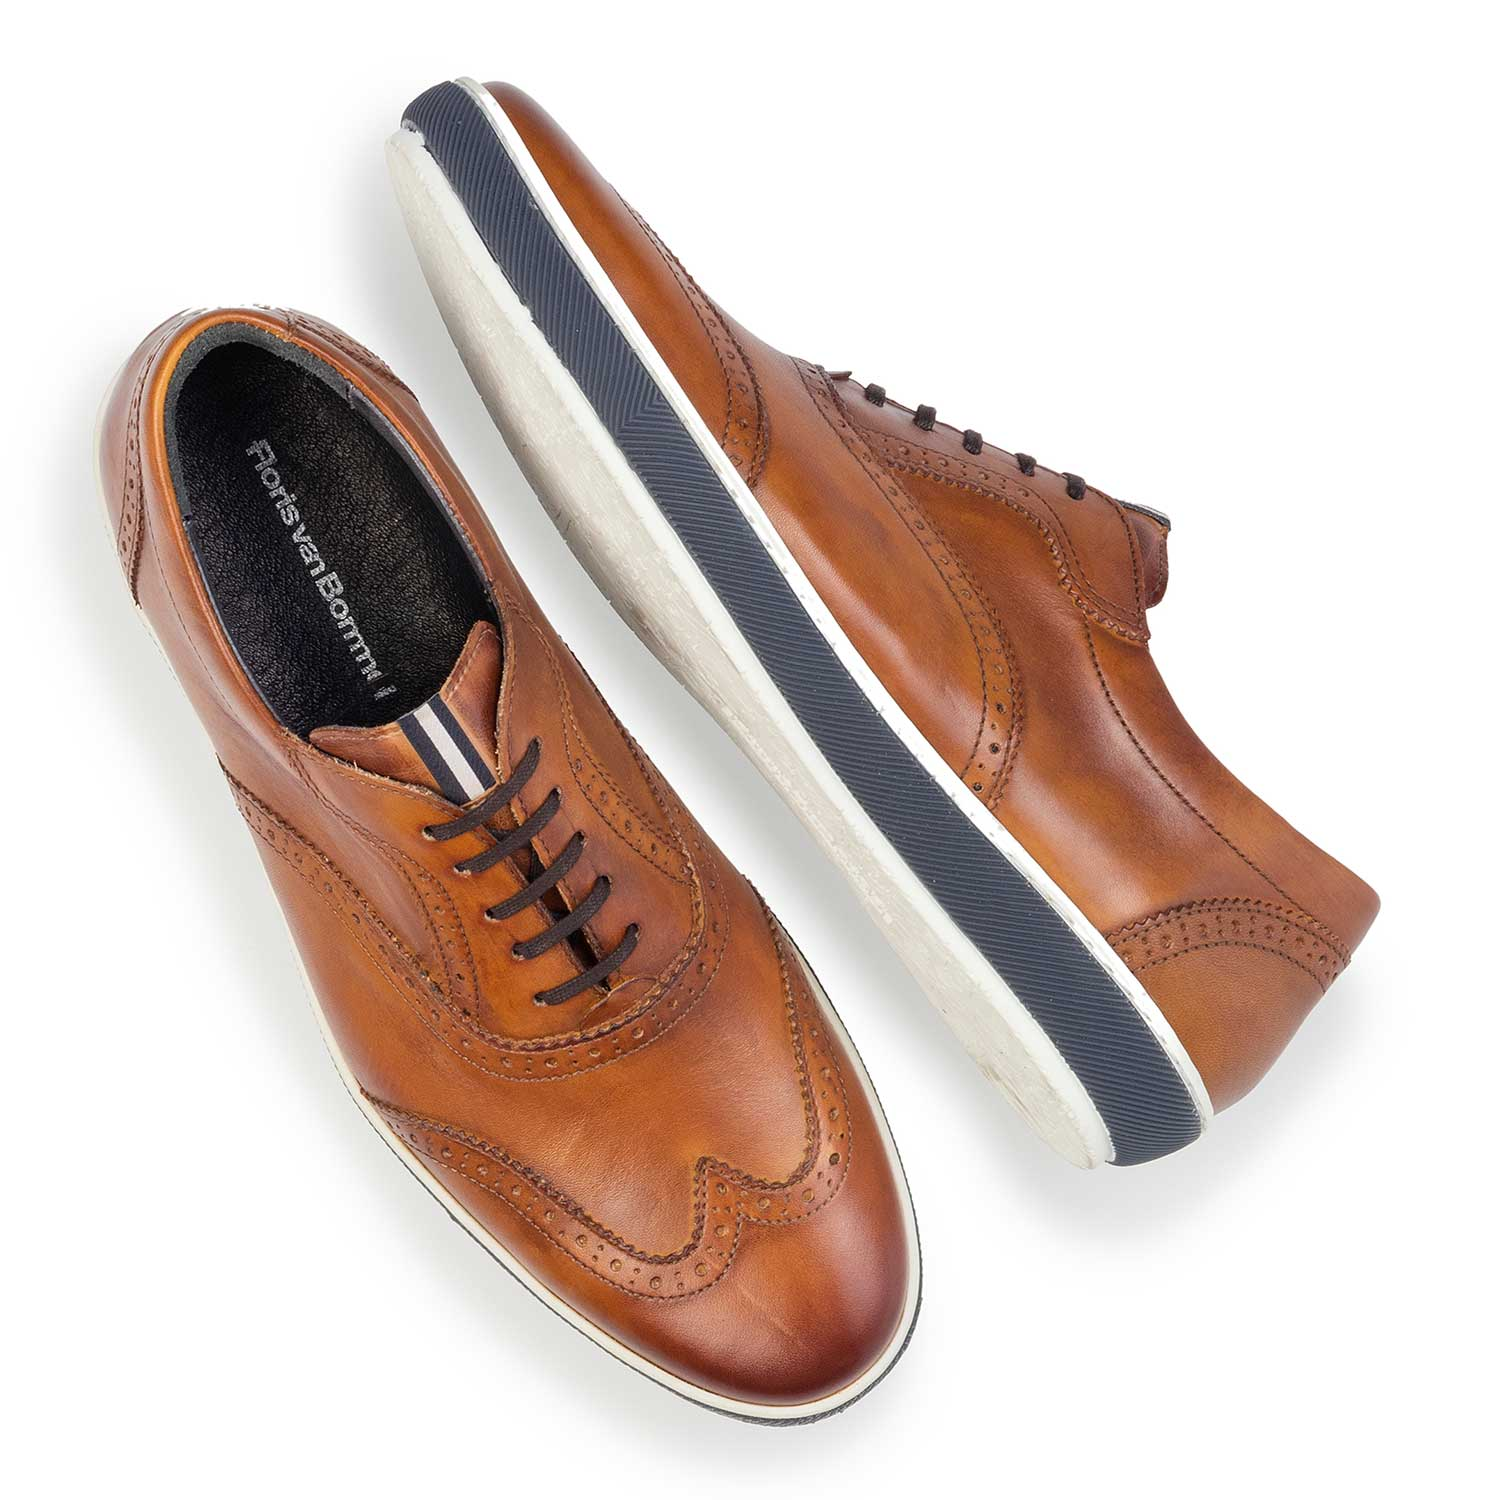 19036/38 - Cognac-coloured calf leather brogue shoe